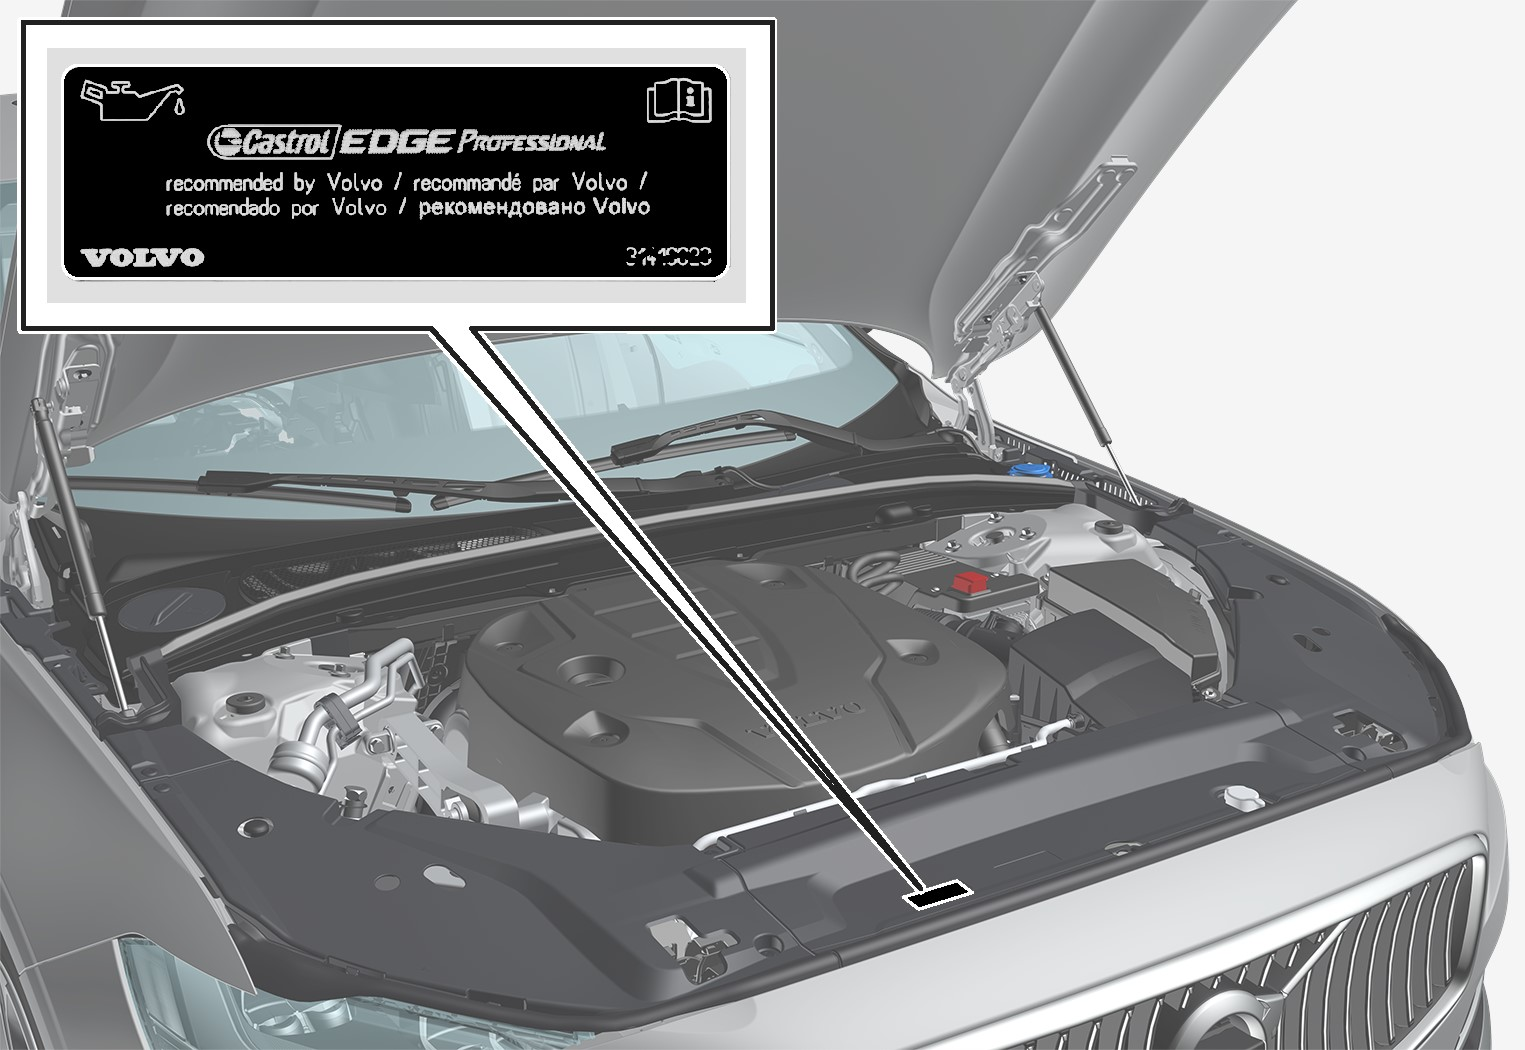 P5-1617-S90/V90 Oil decal EU/OS